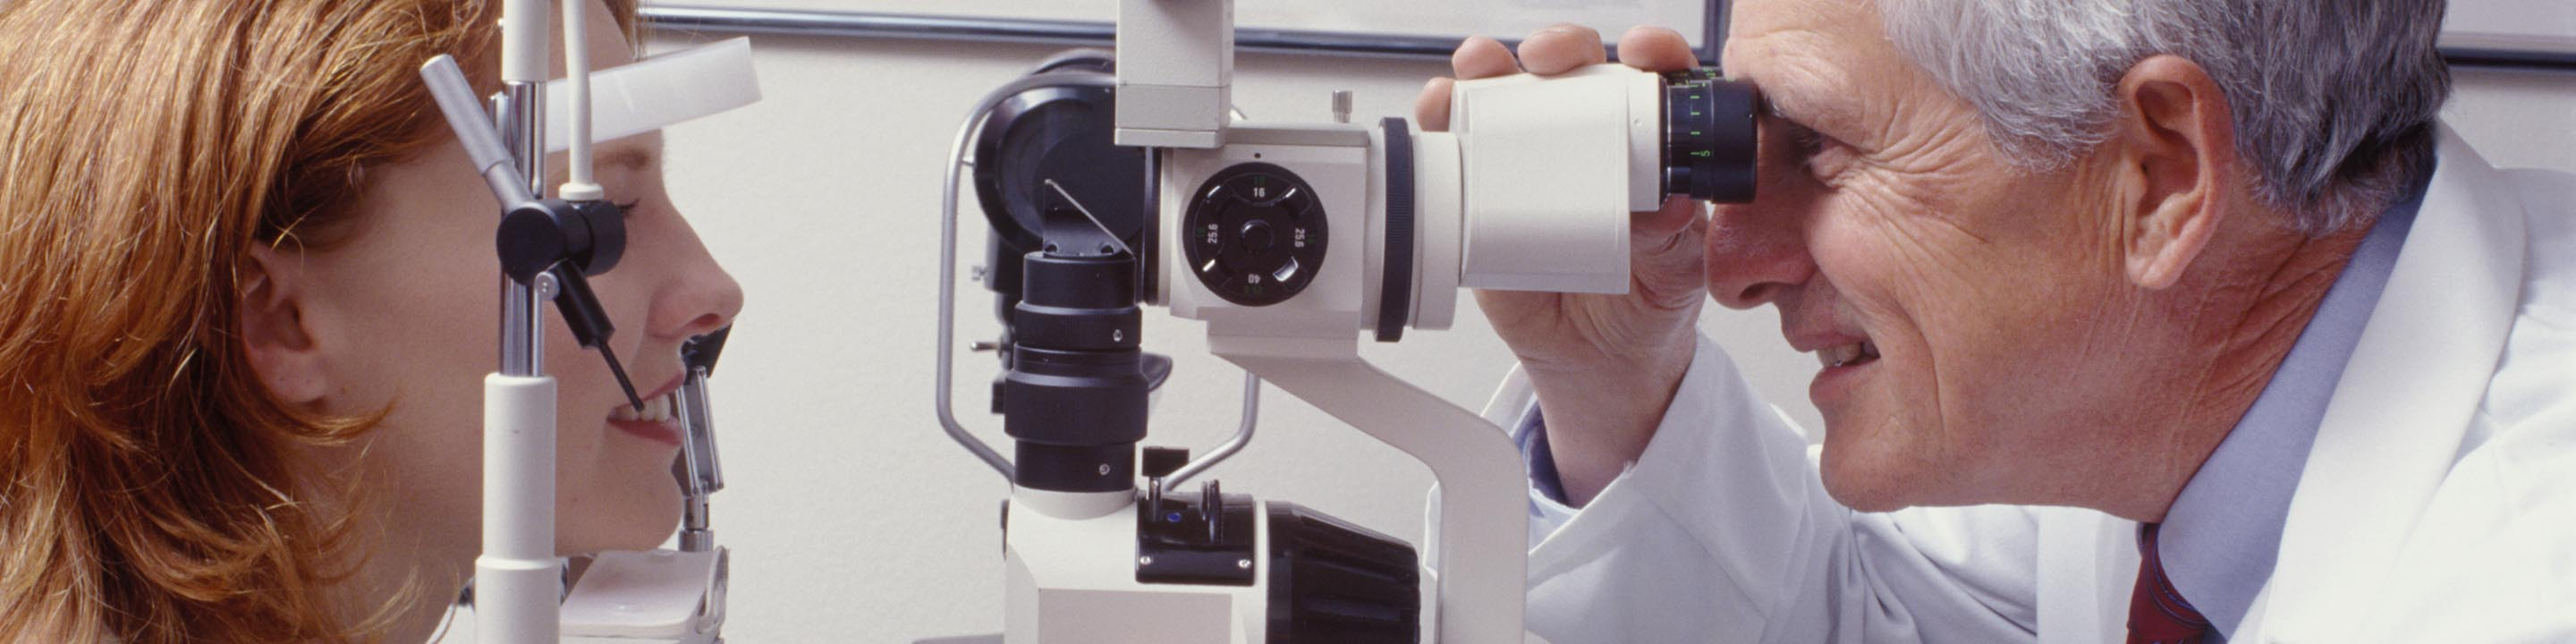 Image of doctor performing eye exam on female patient.